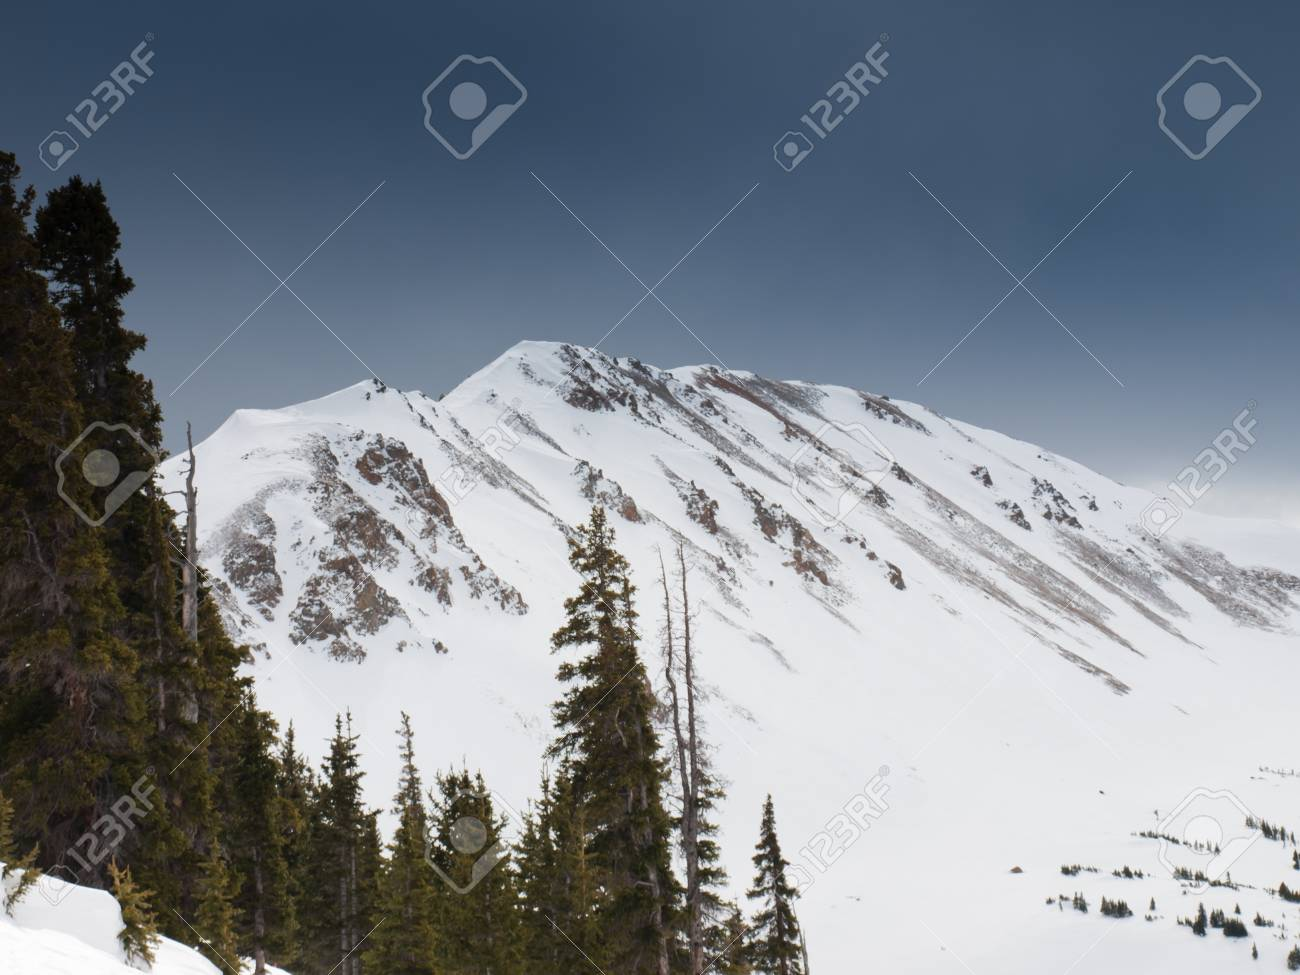 loveland ski resort in colorado. stock photo, picture and royalty